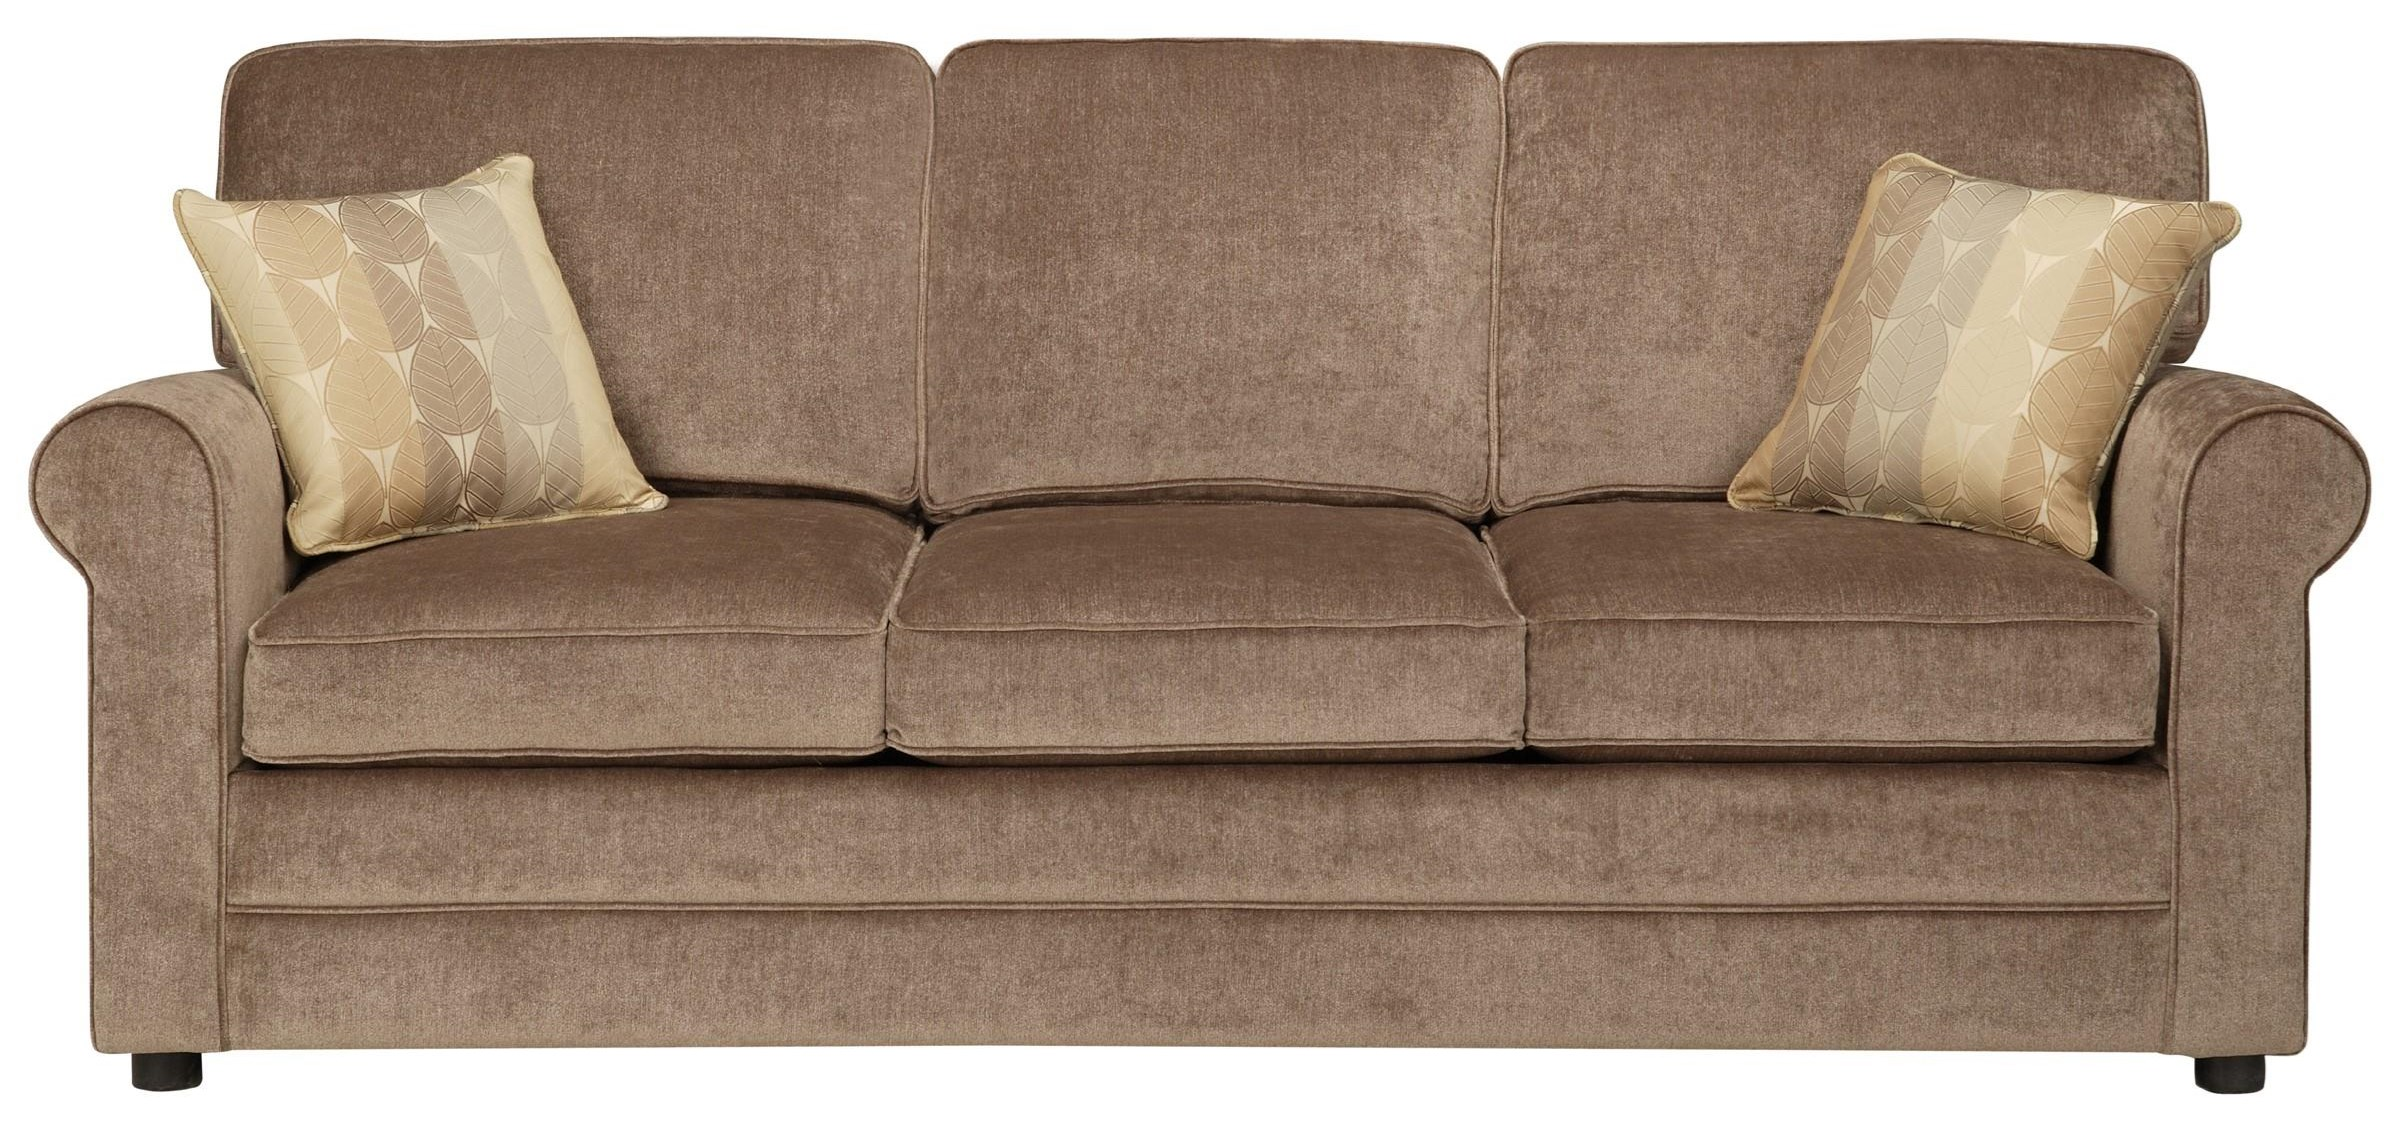 Contessa Queen Sofa Bed by Simmons Upholstery Canada at Stoney Creek Furniture